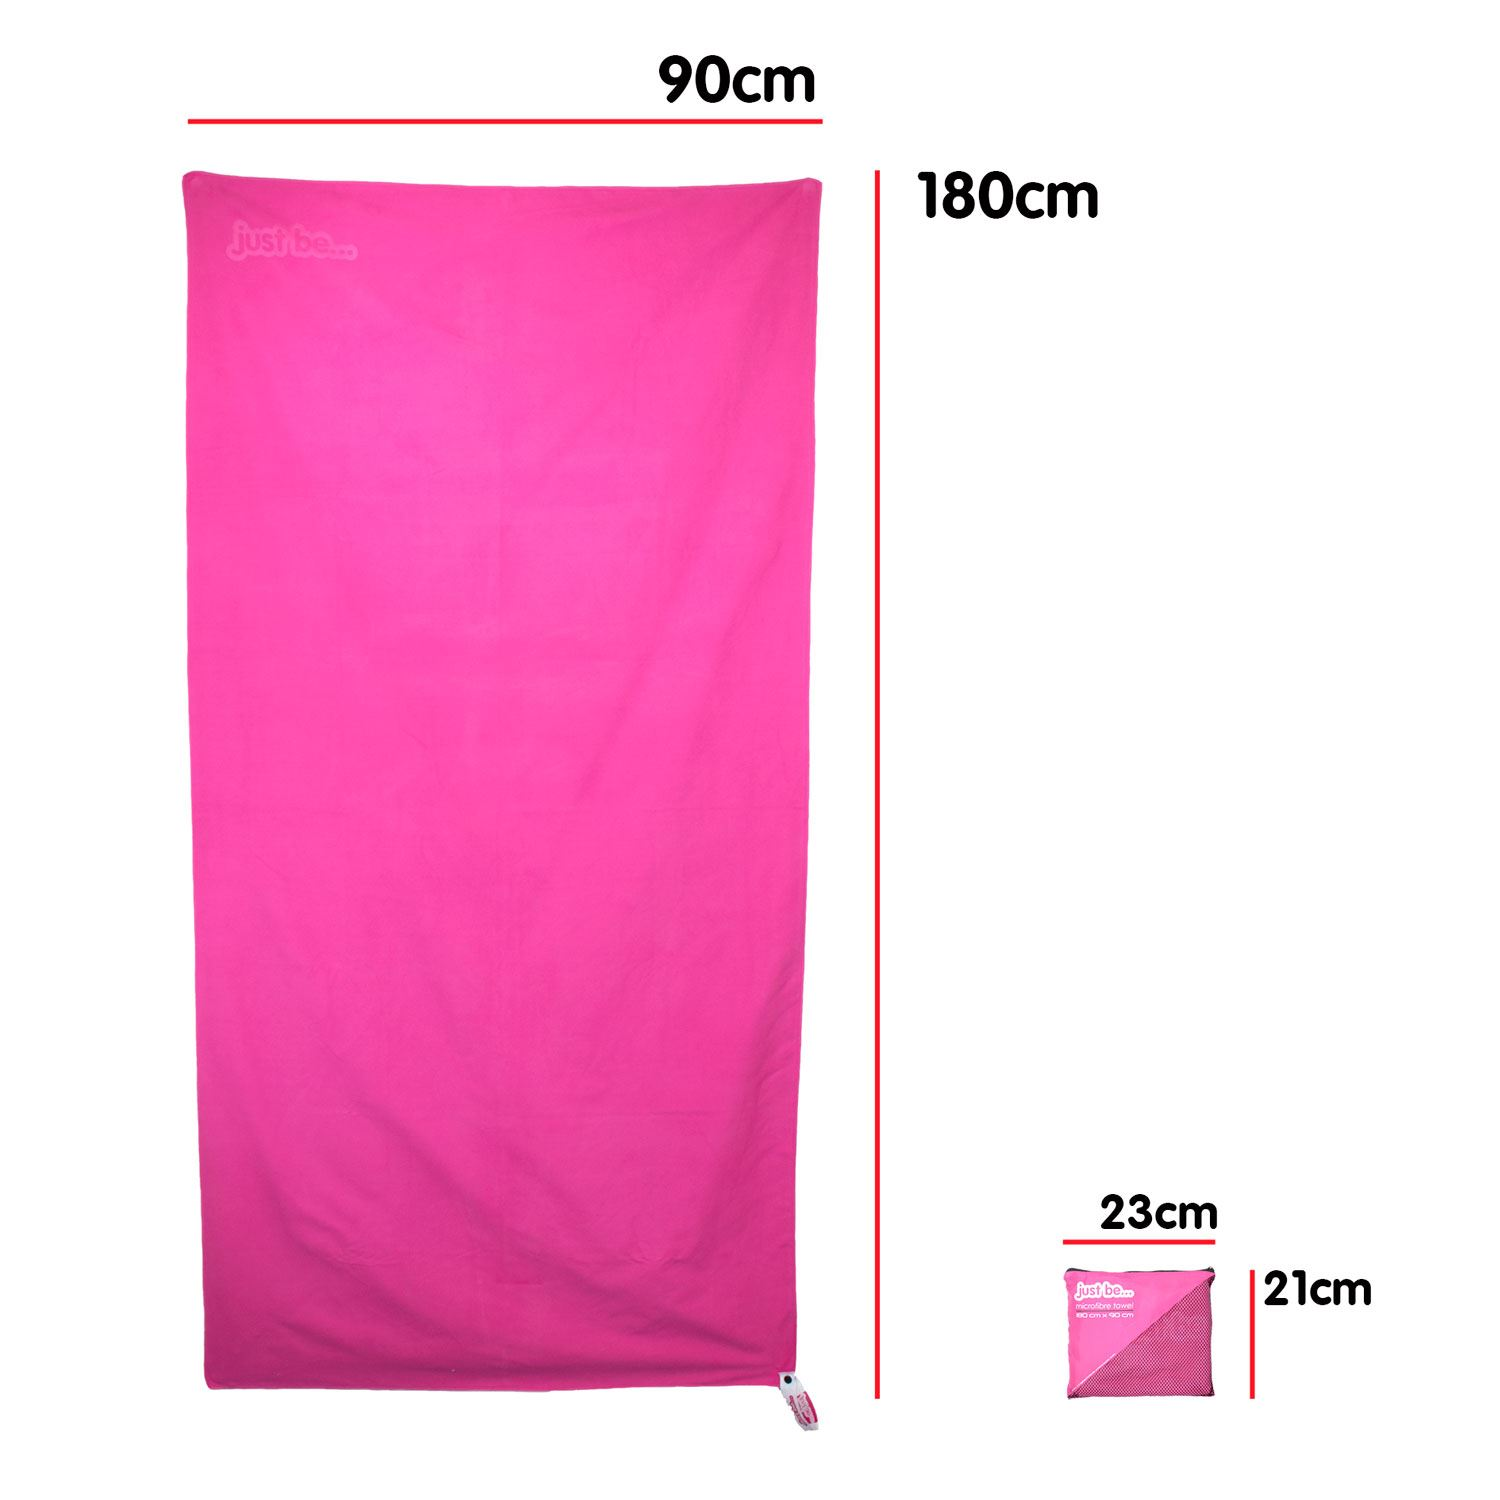 thumbnail 14 - Compact Large Quick Dry Microfibre Beach Towel with Travel Bag Camping Yoga Swim